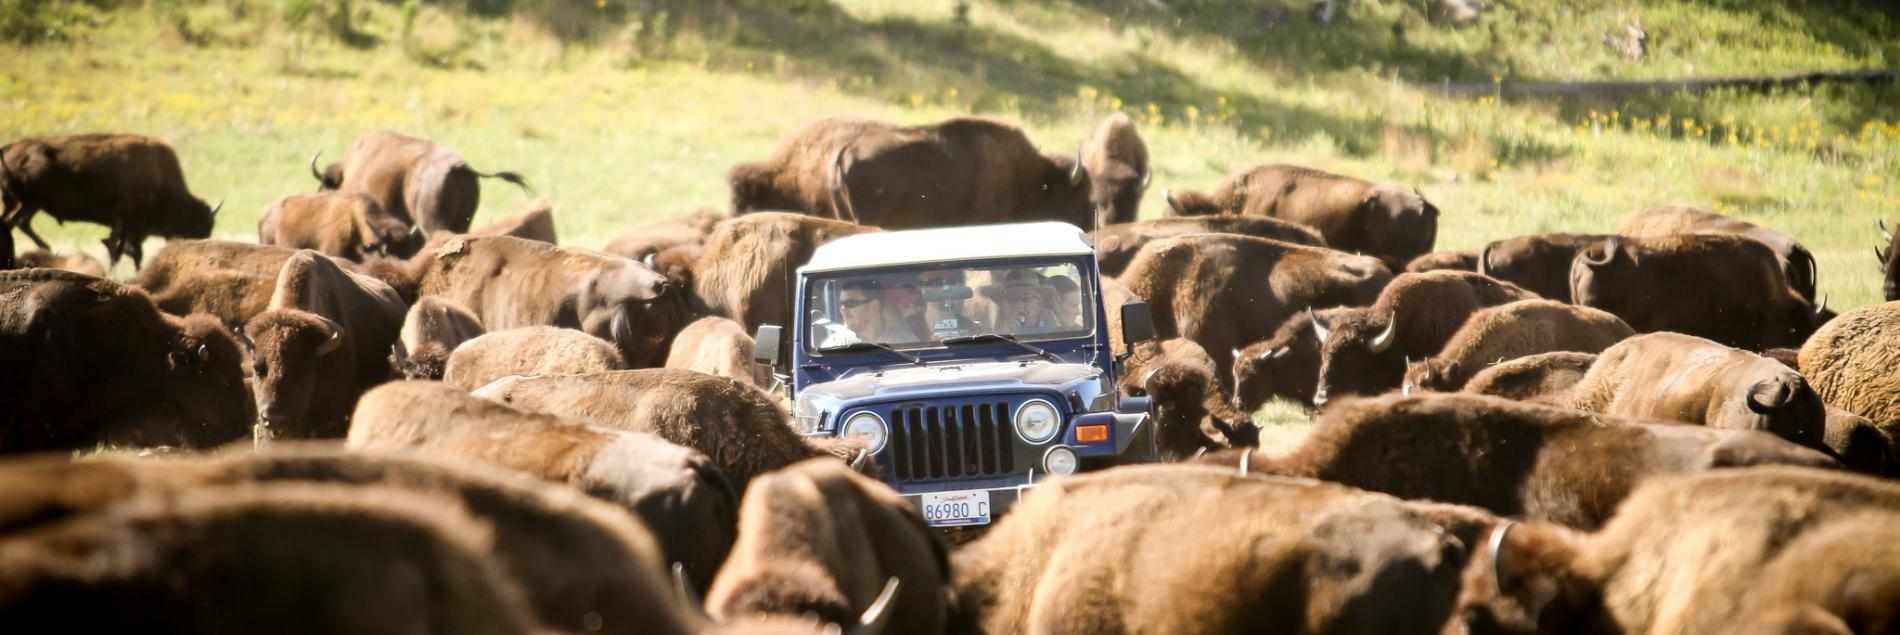 Buffalo Safari Jeep Rides | Custer State Park